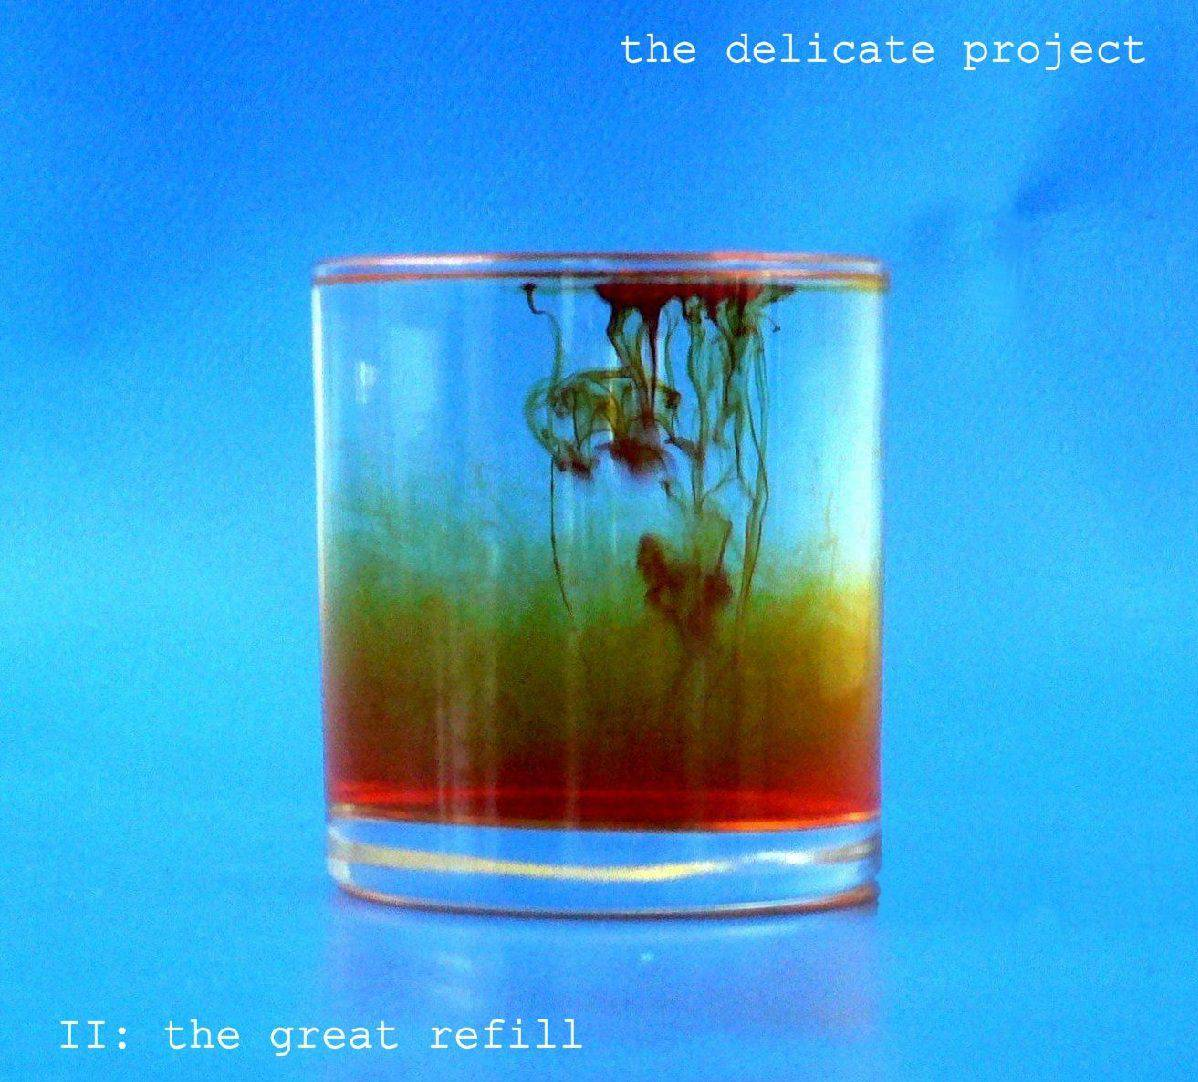 The delicate project